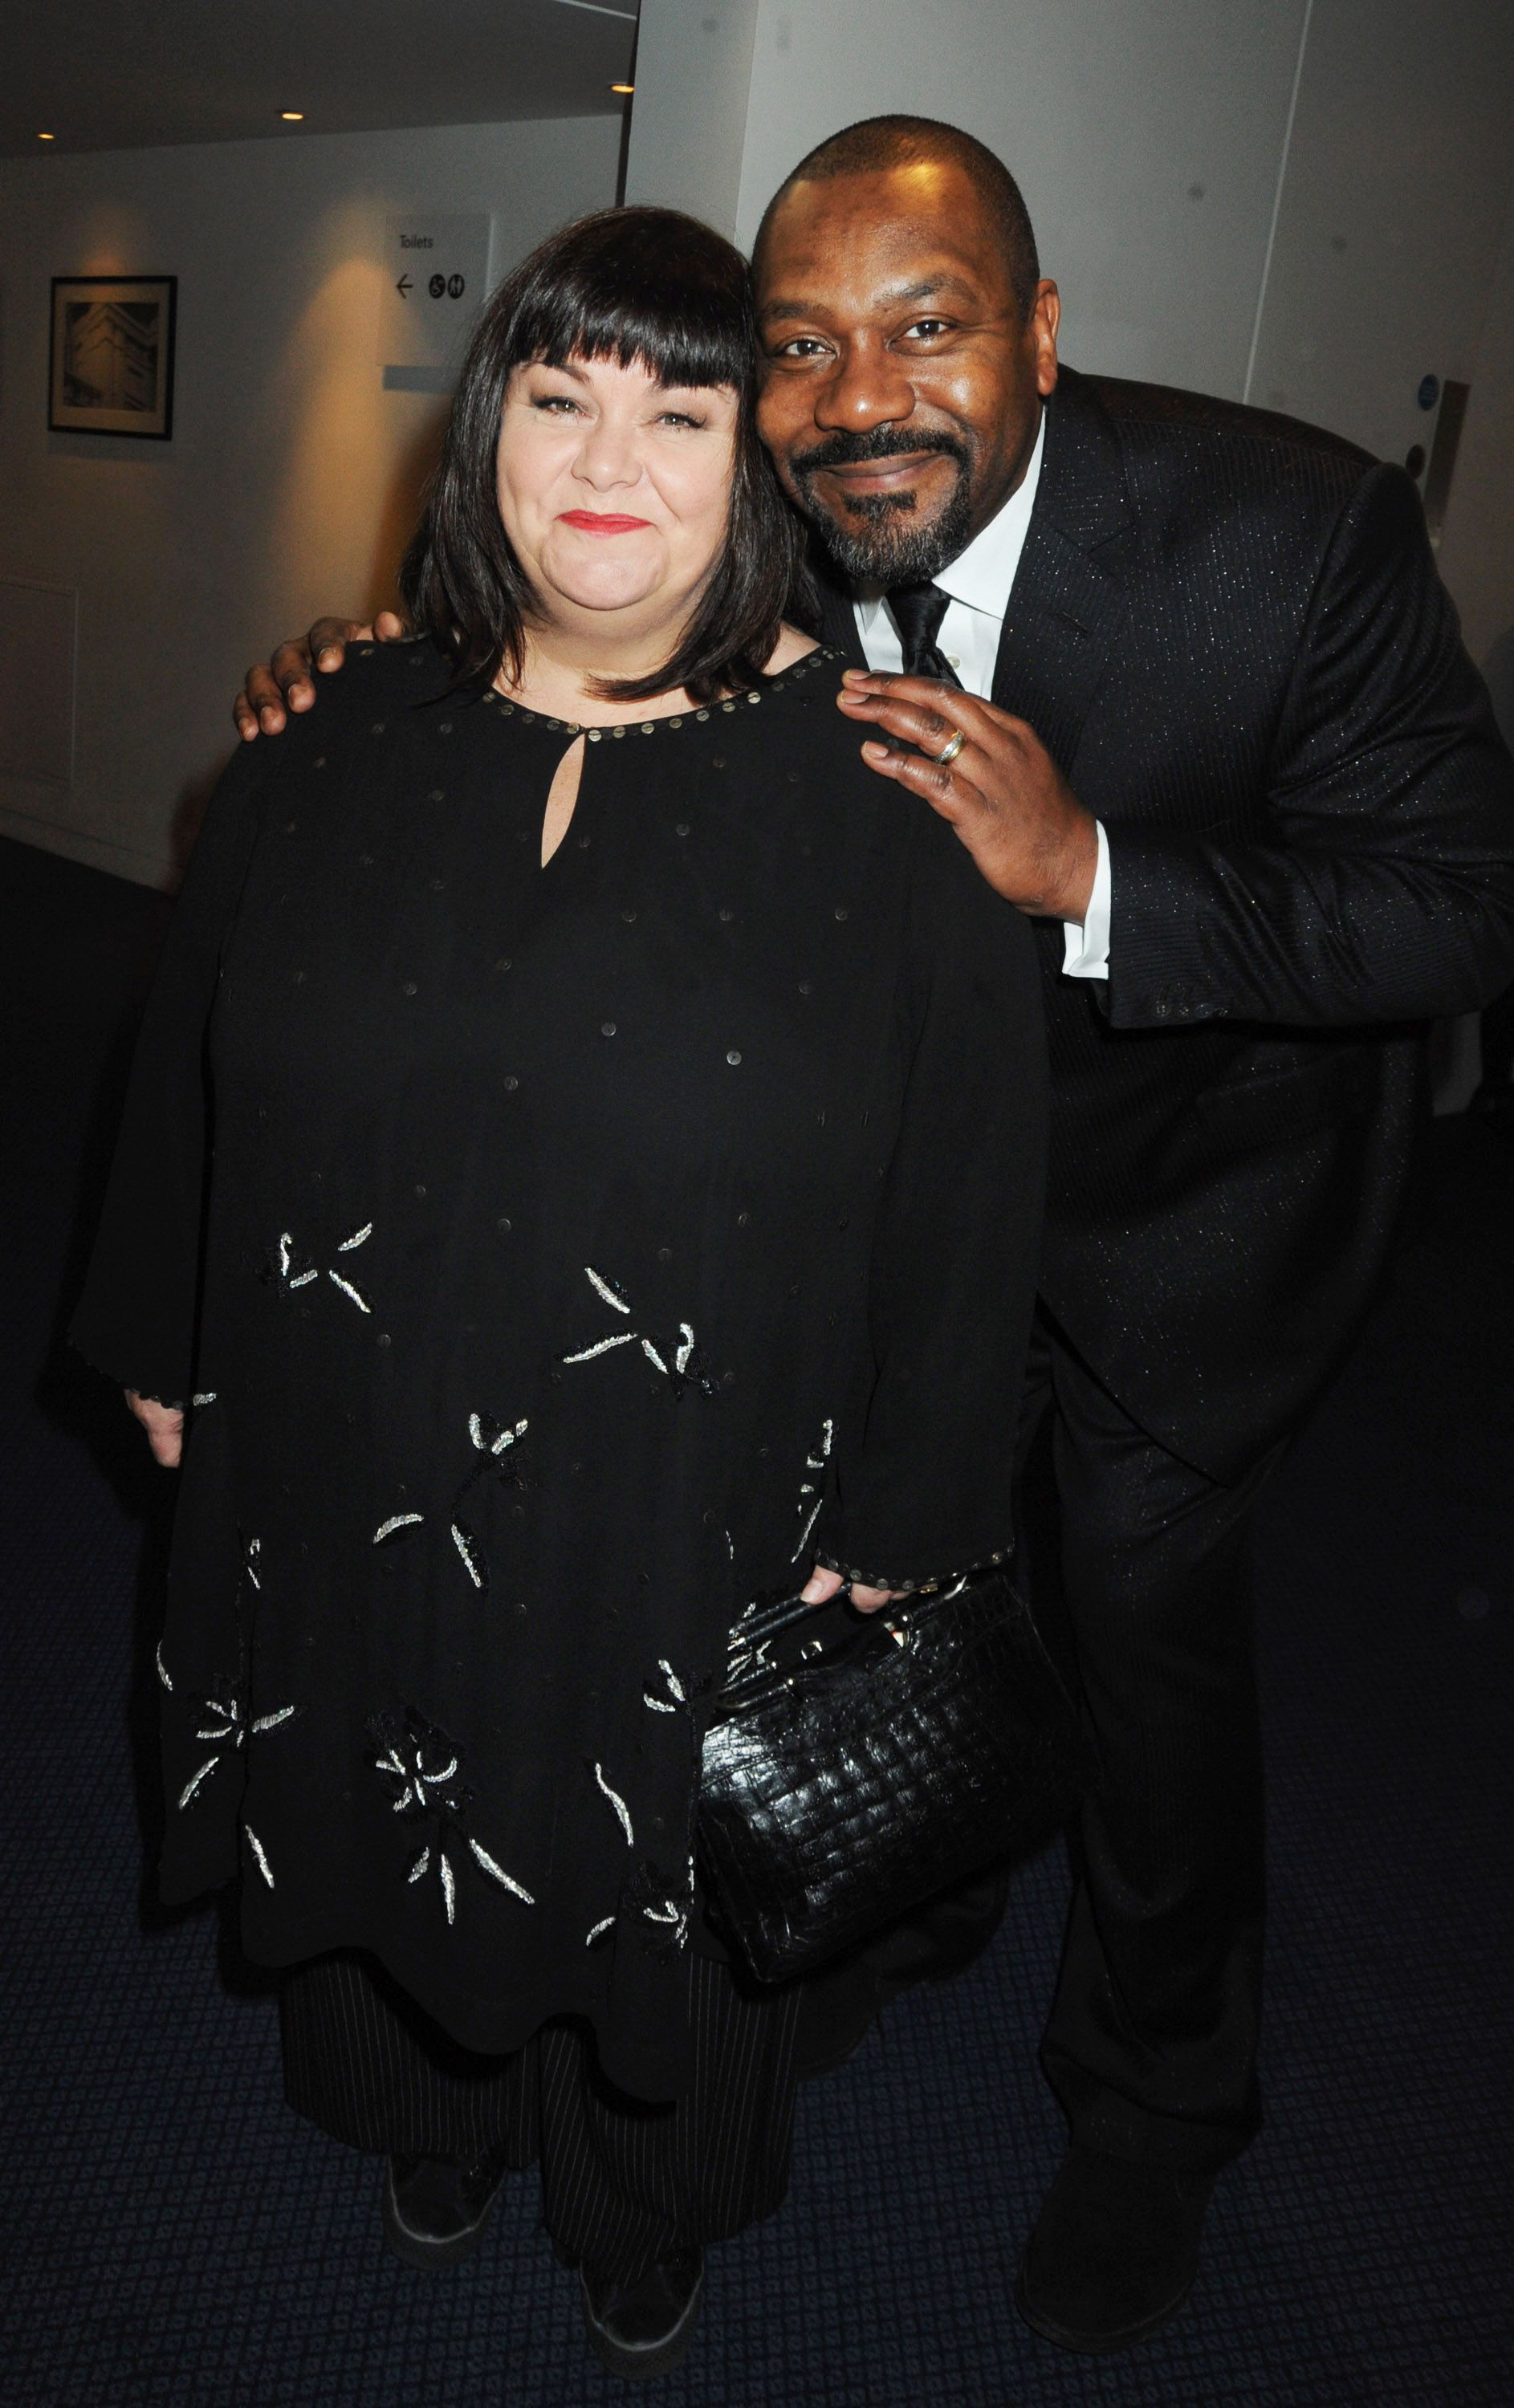 Lenny Henry and Dawn French at the reception ahead of the London Evening Standard Theatre Awards at the Royal Opera House on November 23, 2009 in London, England. | Photo: Getty Images